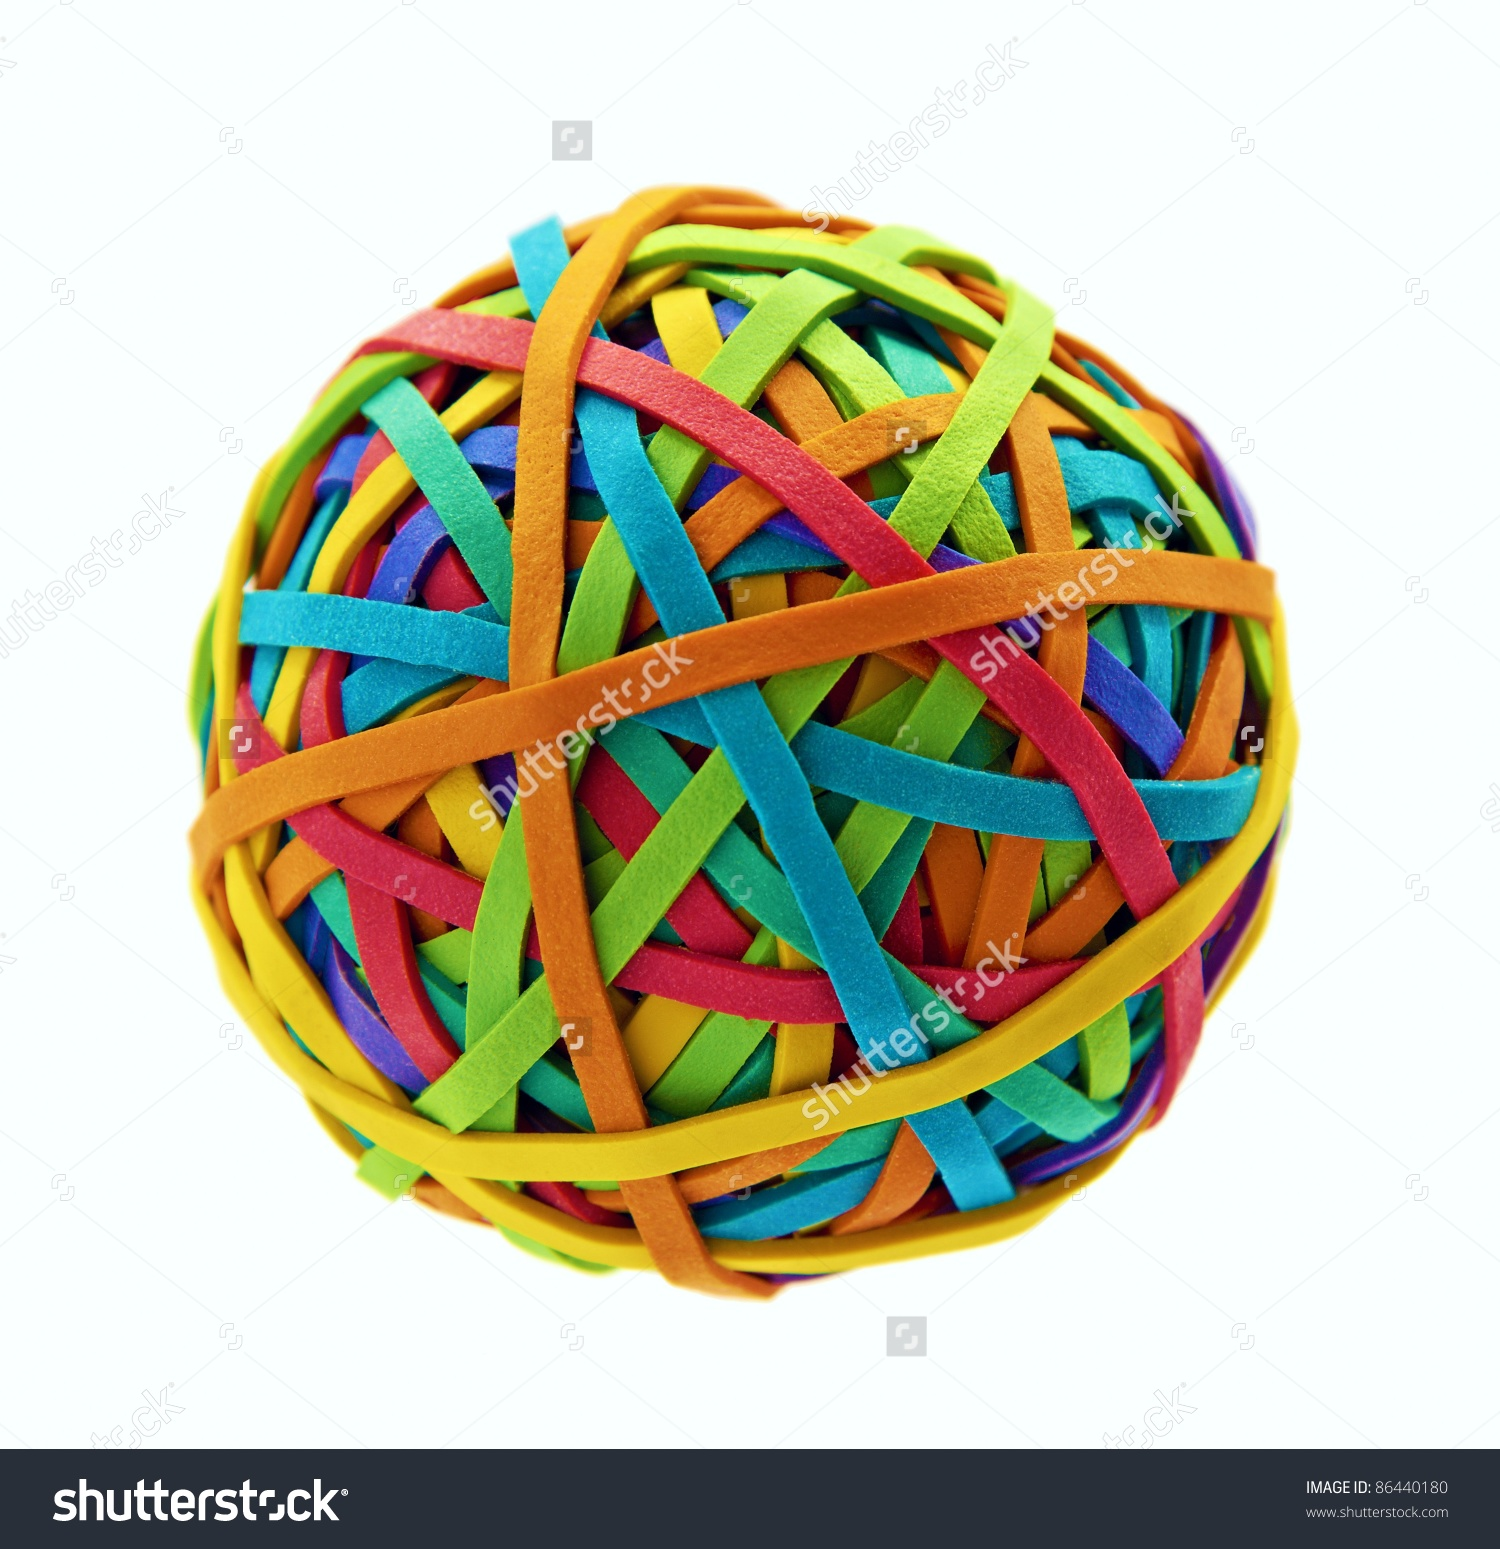 Rubber Band Ball Stock Photo 86440180.